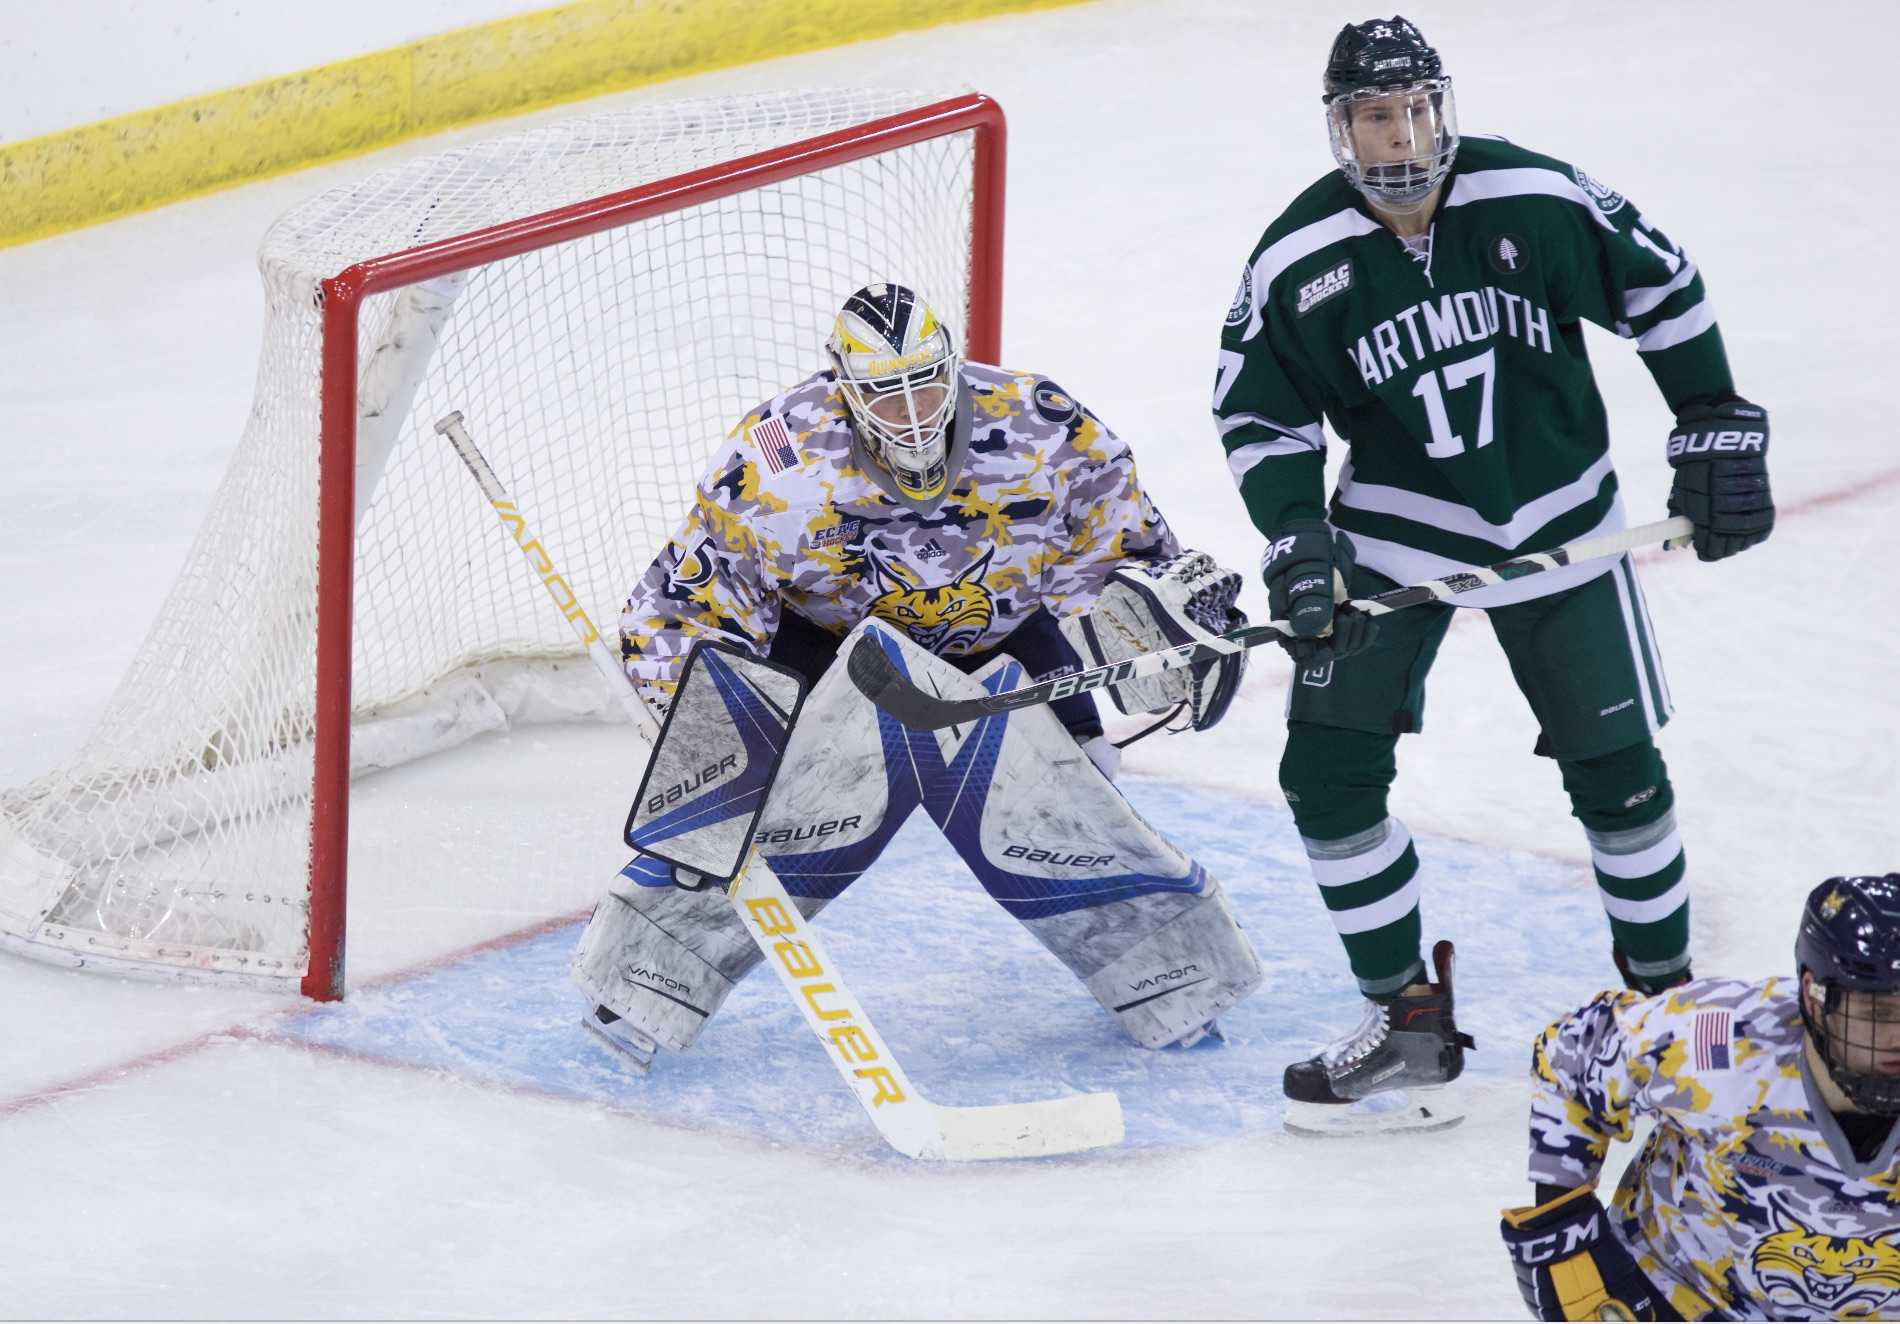 Quinnipiac men's ice hockey plays to a scoreless tie against Dartmouth